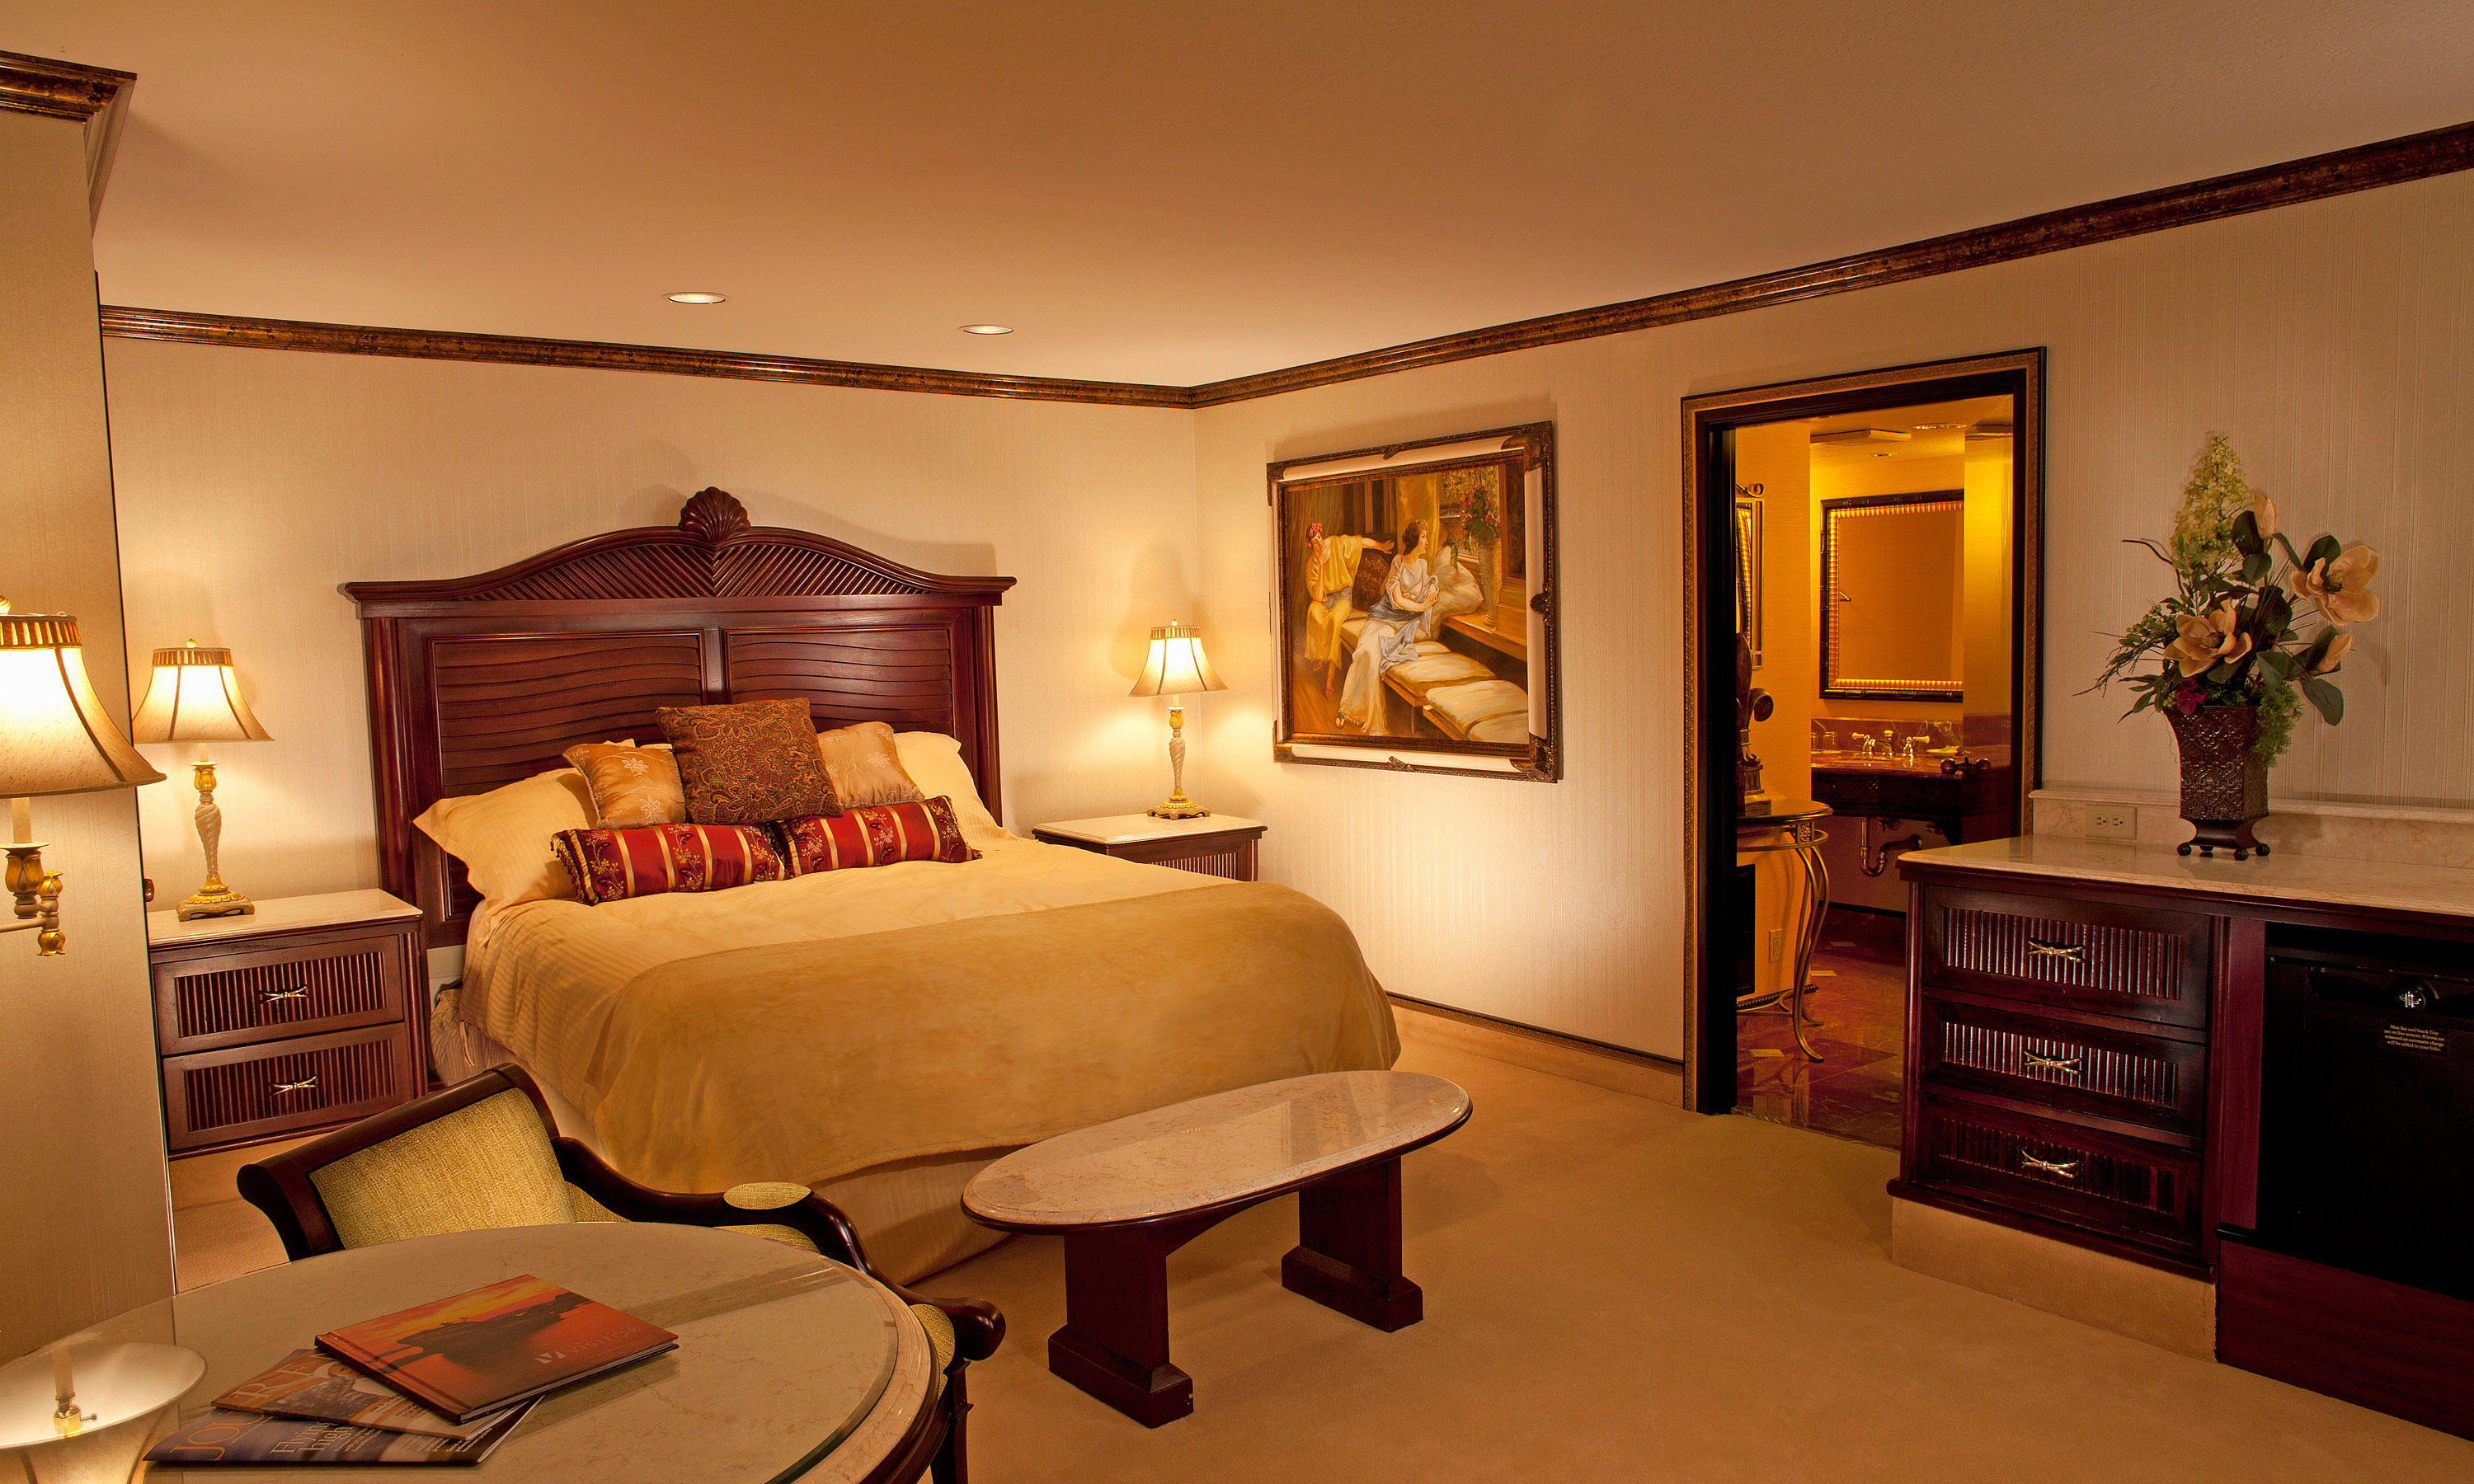 Resort Rooms Nw Parlor Jpg